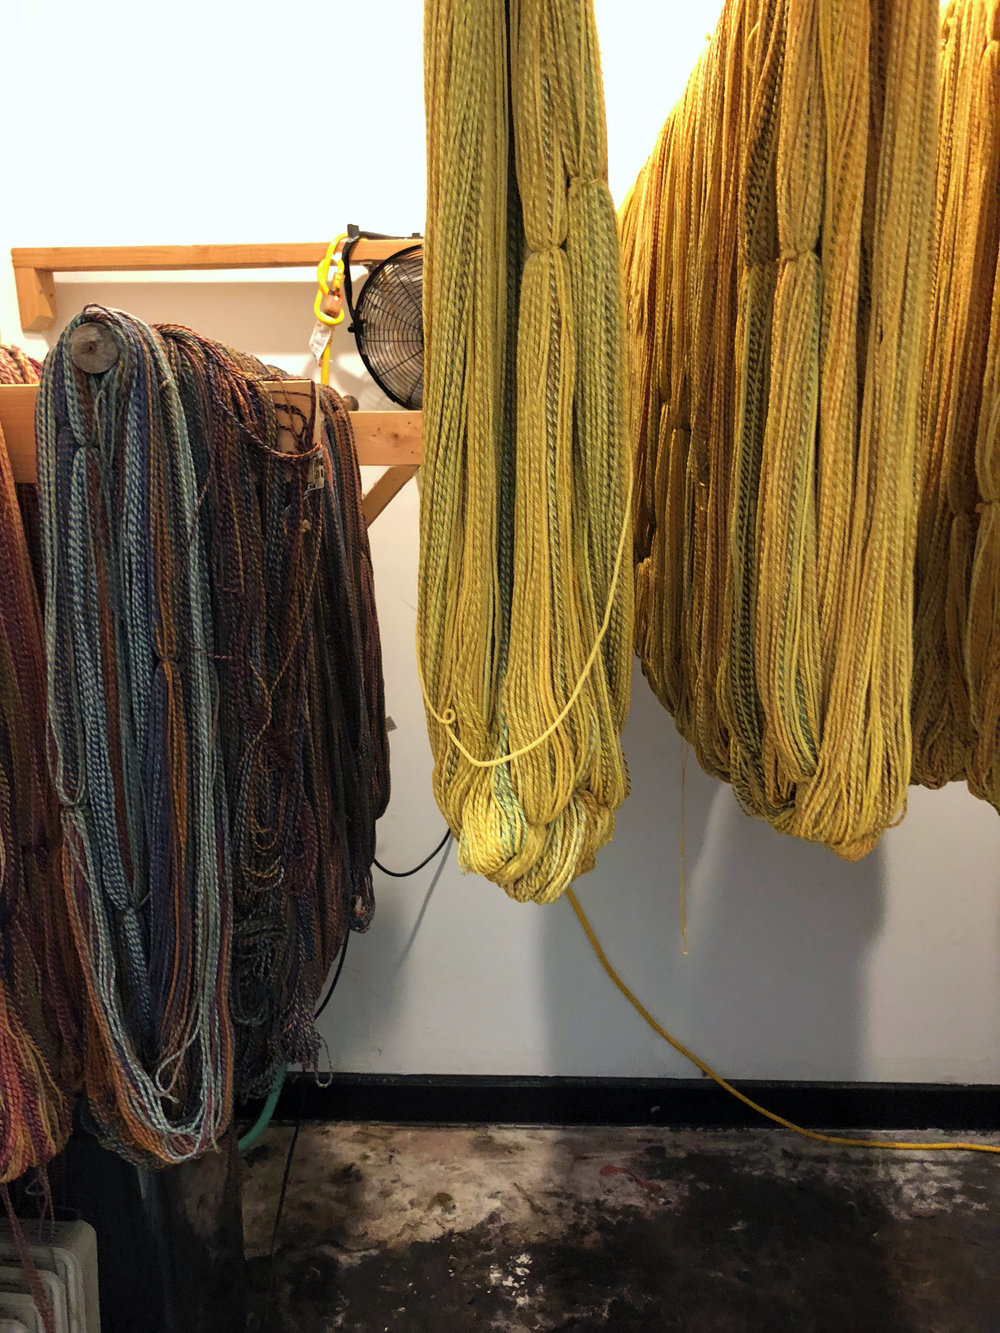 Finished yarn in the drying room